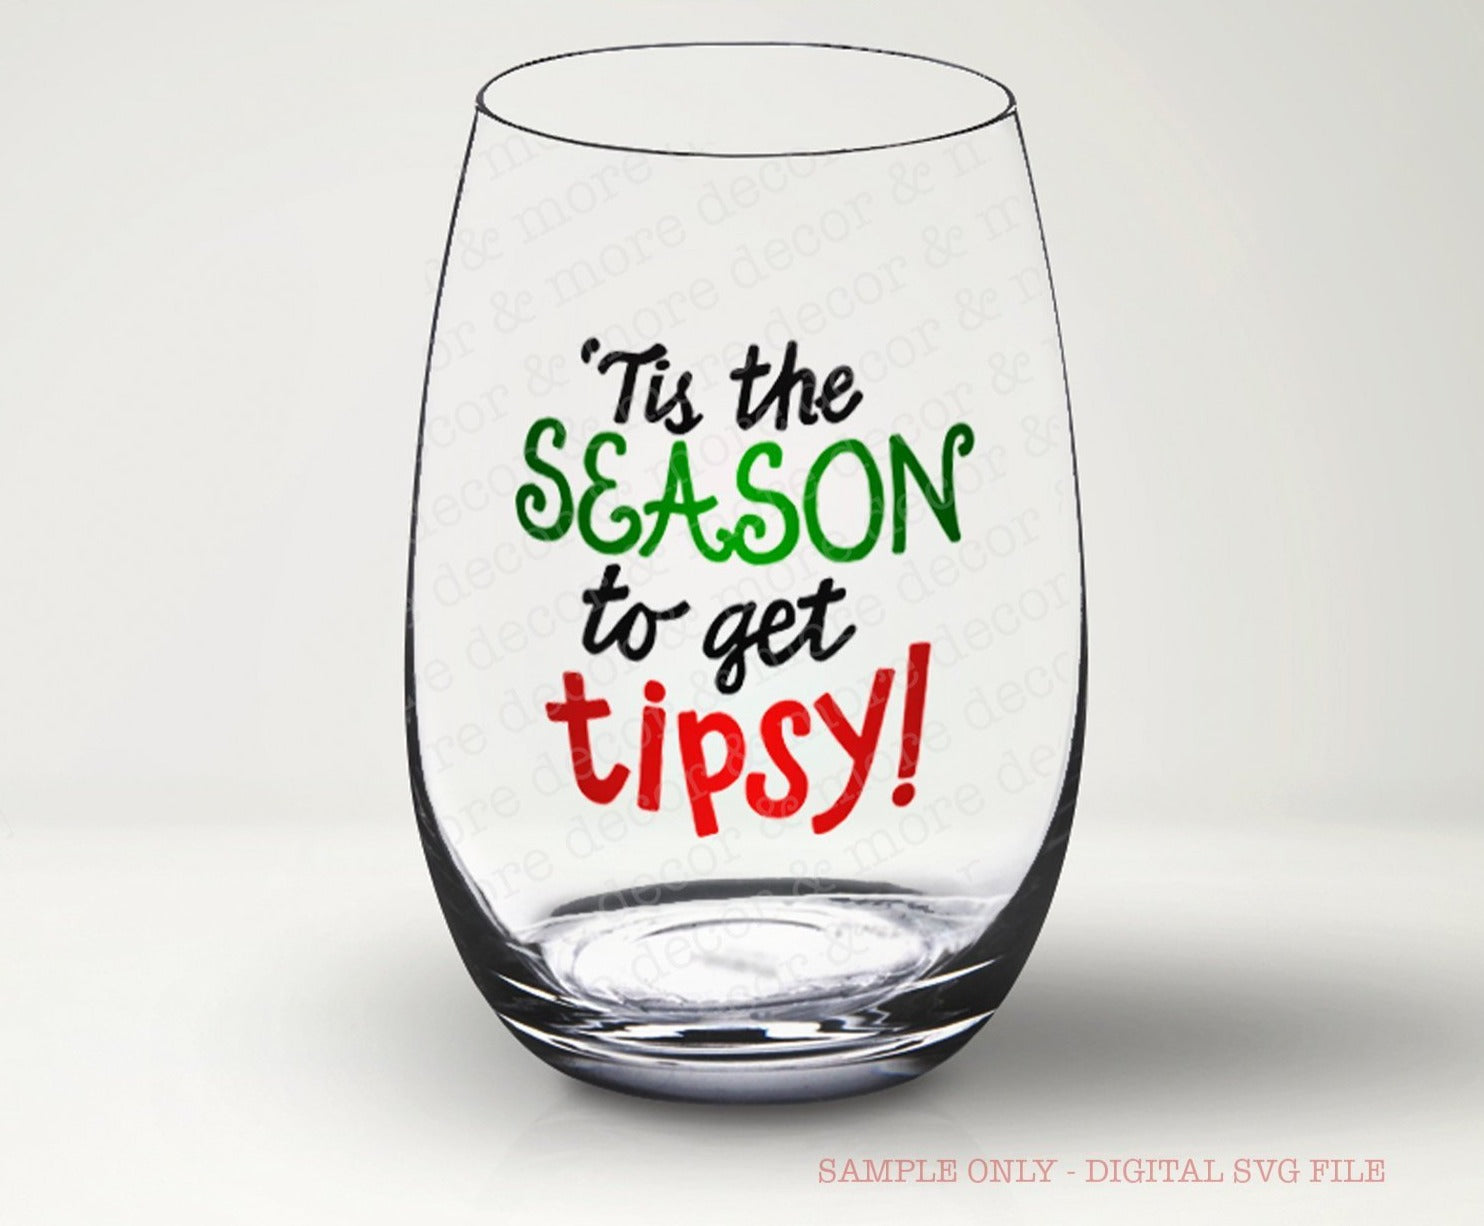 CHRISTMAS WINE GLASS SVG, Tis the Season to Get Tipsy SVG File, Christmas Wine Glass SVG File, Funny Christmas Wine Glass Saying, SVG Files for Cricut